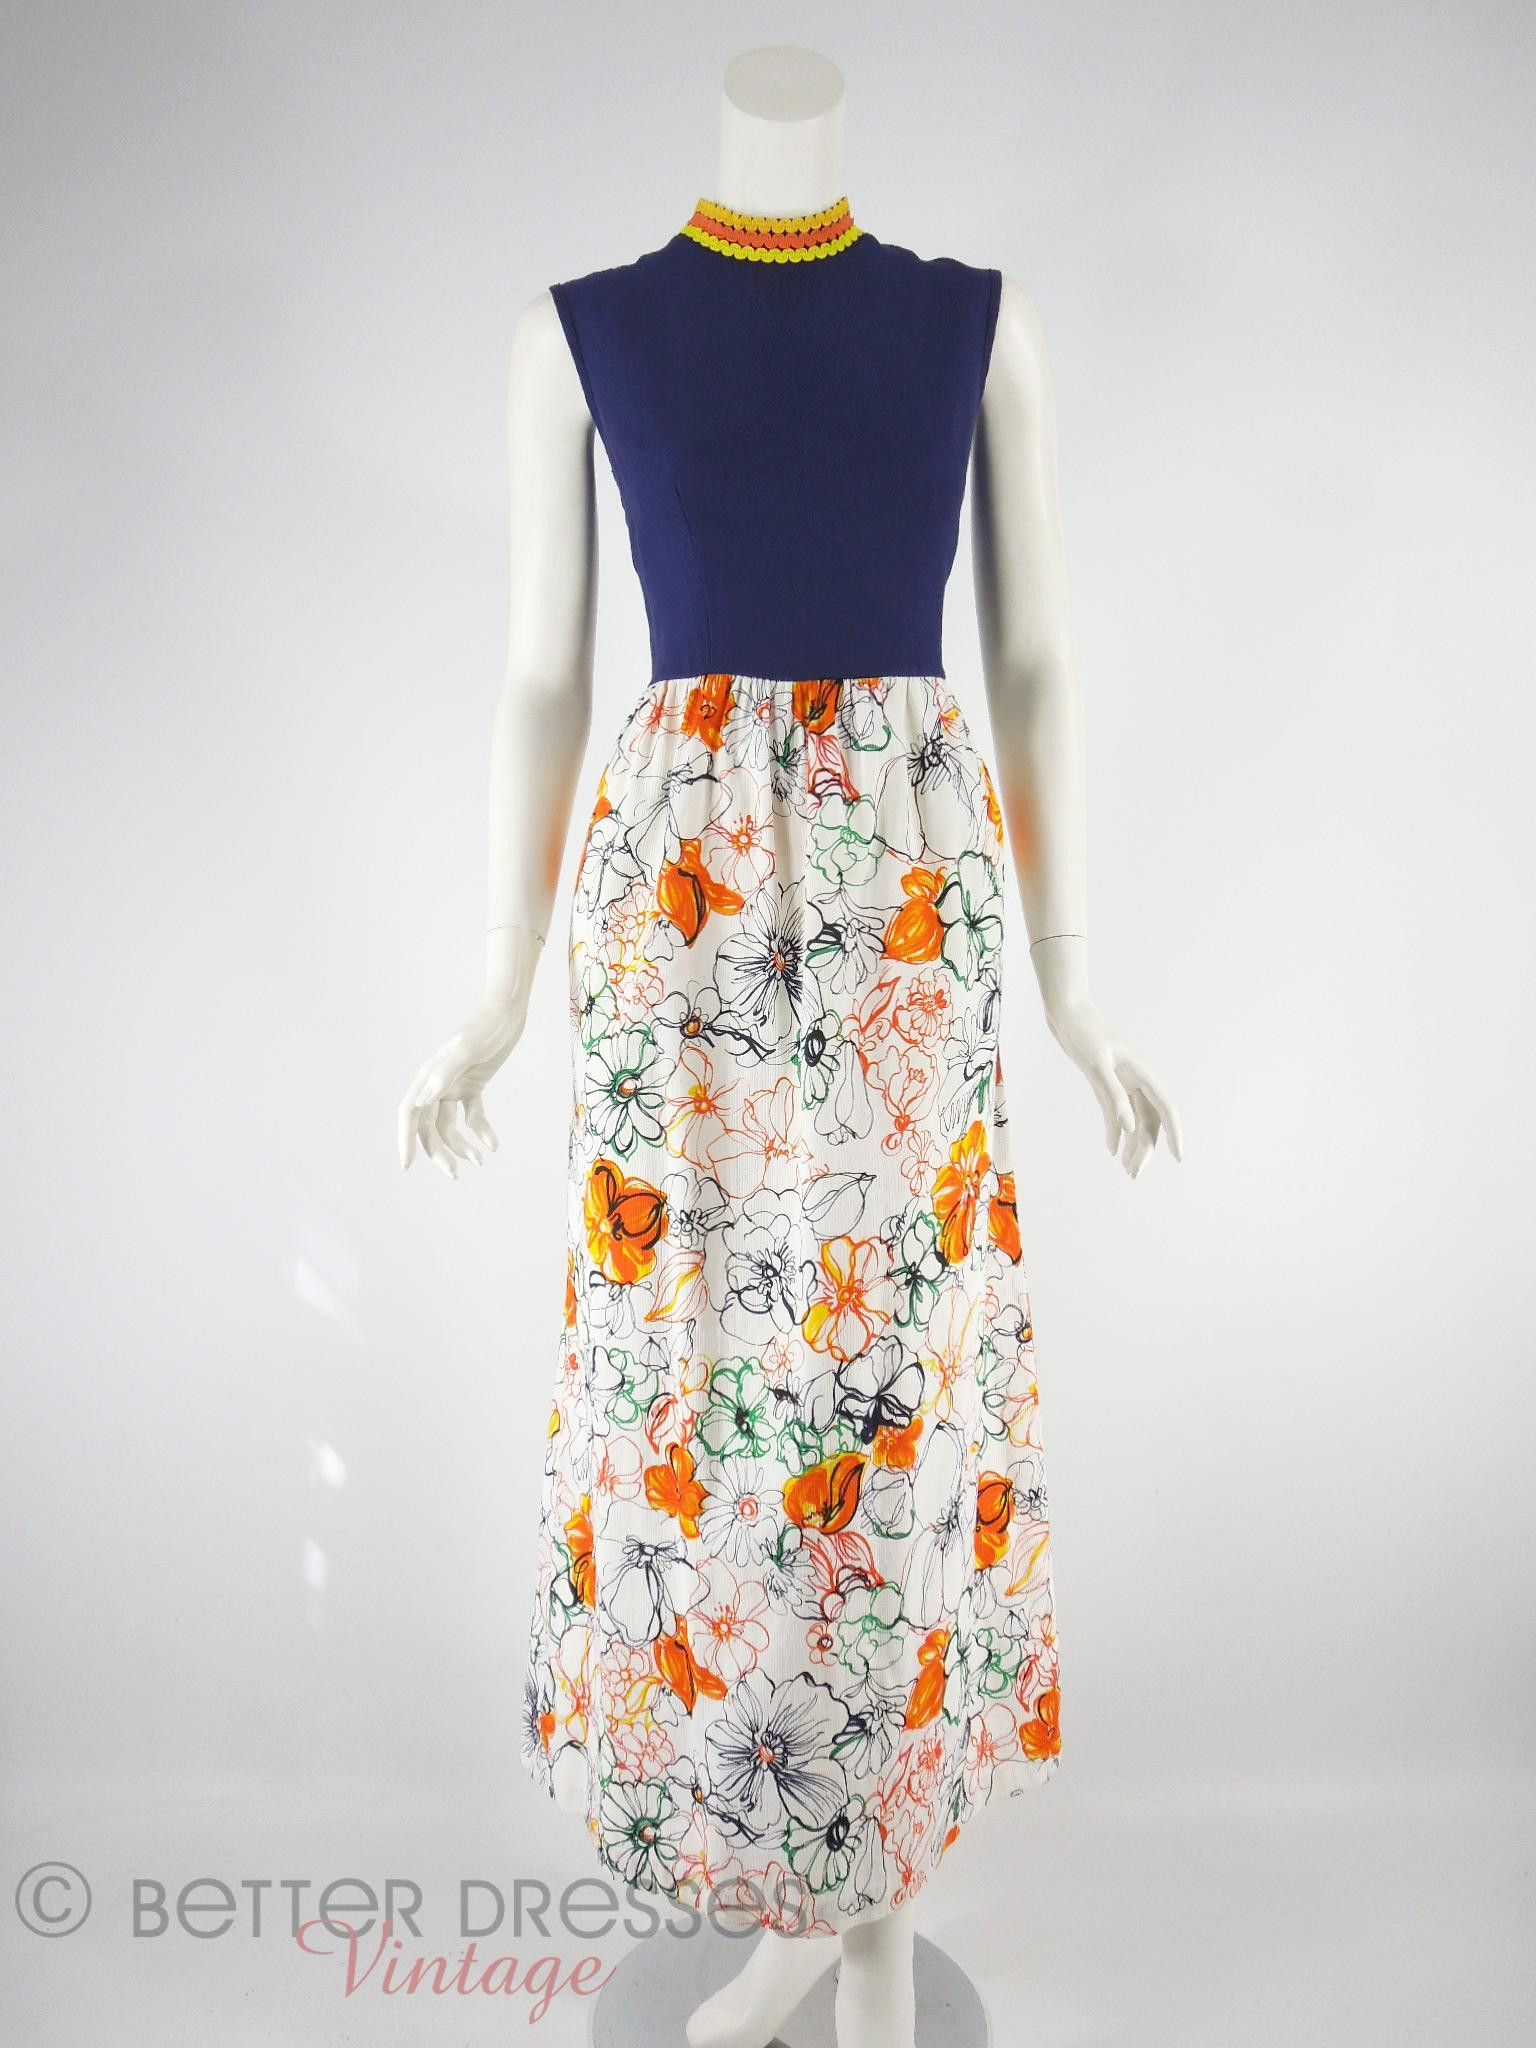 cb1bcee1b0c Vtg 70s Sleeveless Maxi Dress in Navy   Floral Cotton - sm by Better Dresses  Vintage